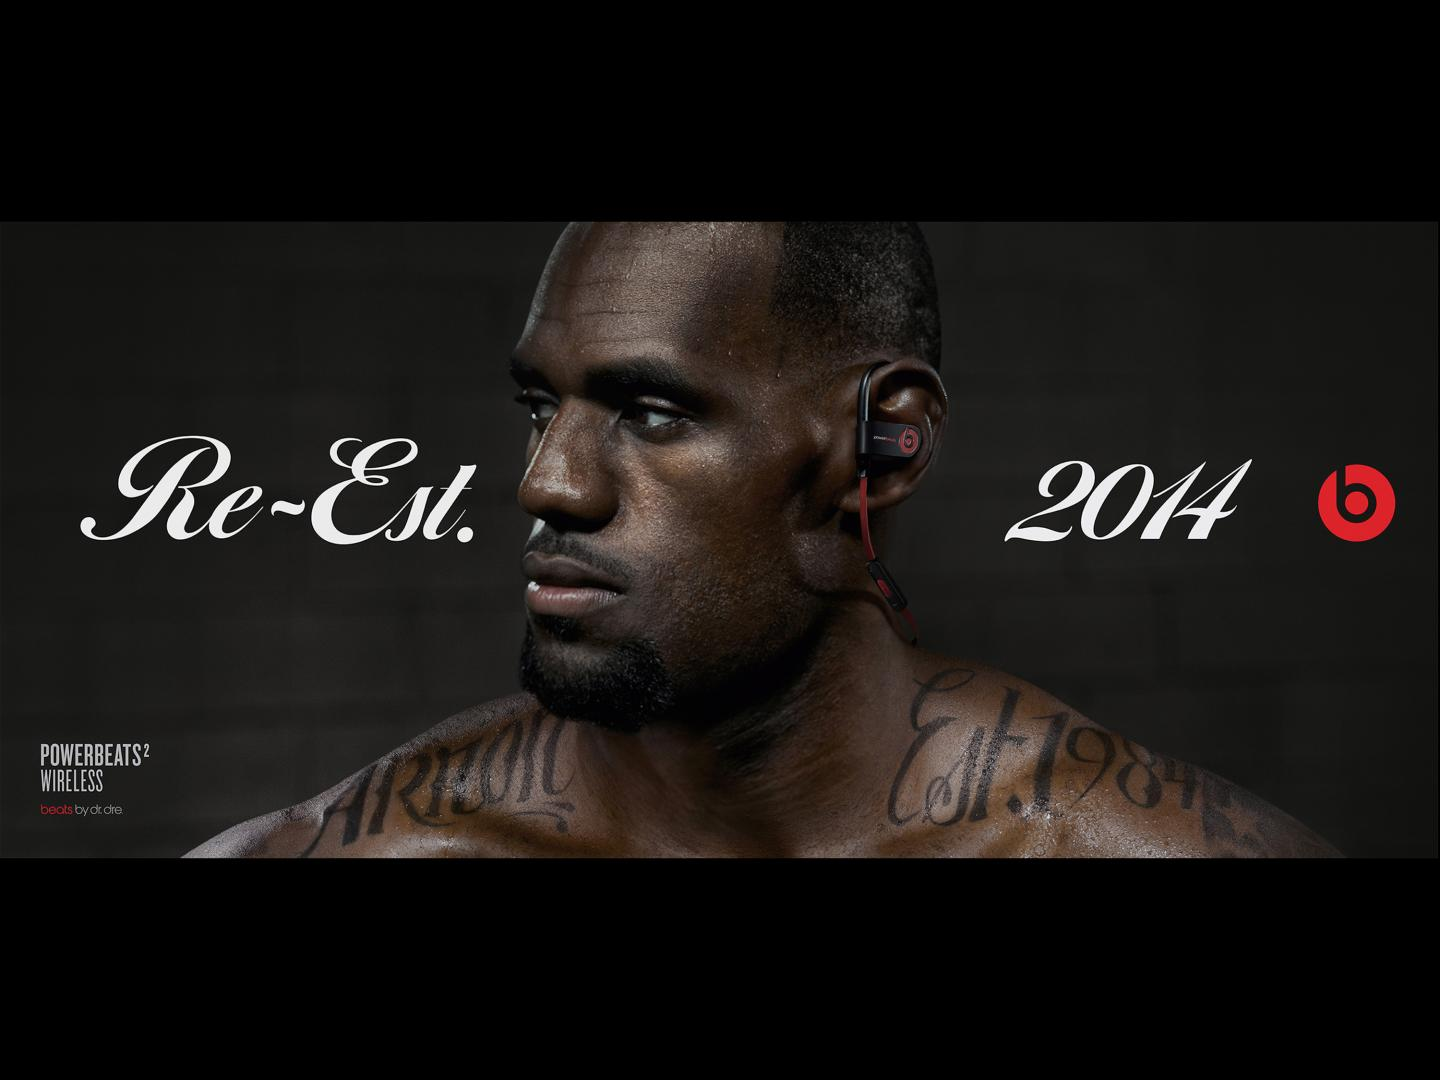 LeBron Re-Established 2014 Thumbnail